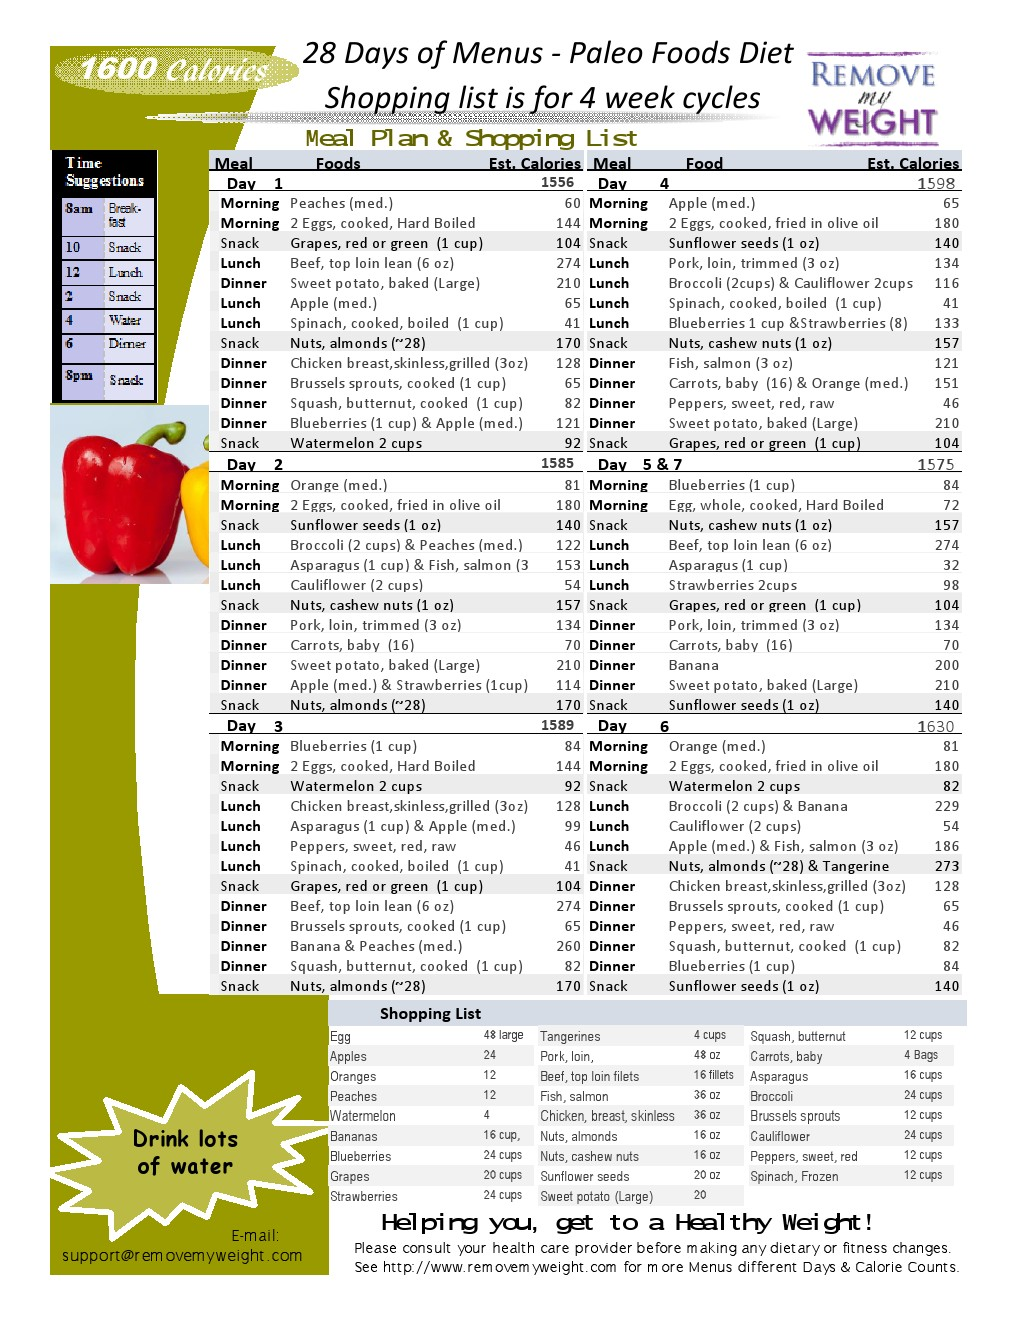 paleo diet 28 day menu plan at 1600 calories a day